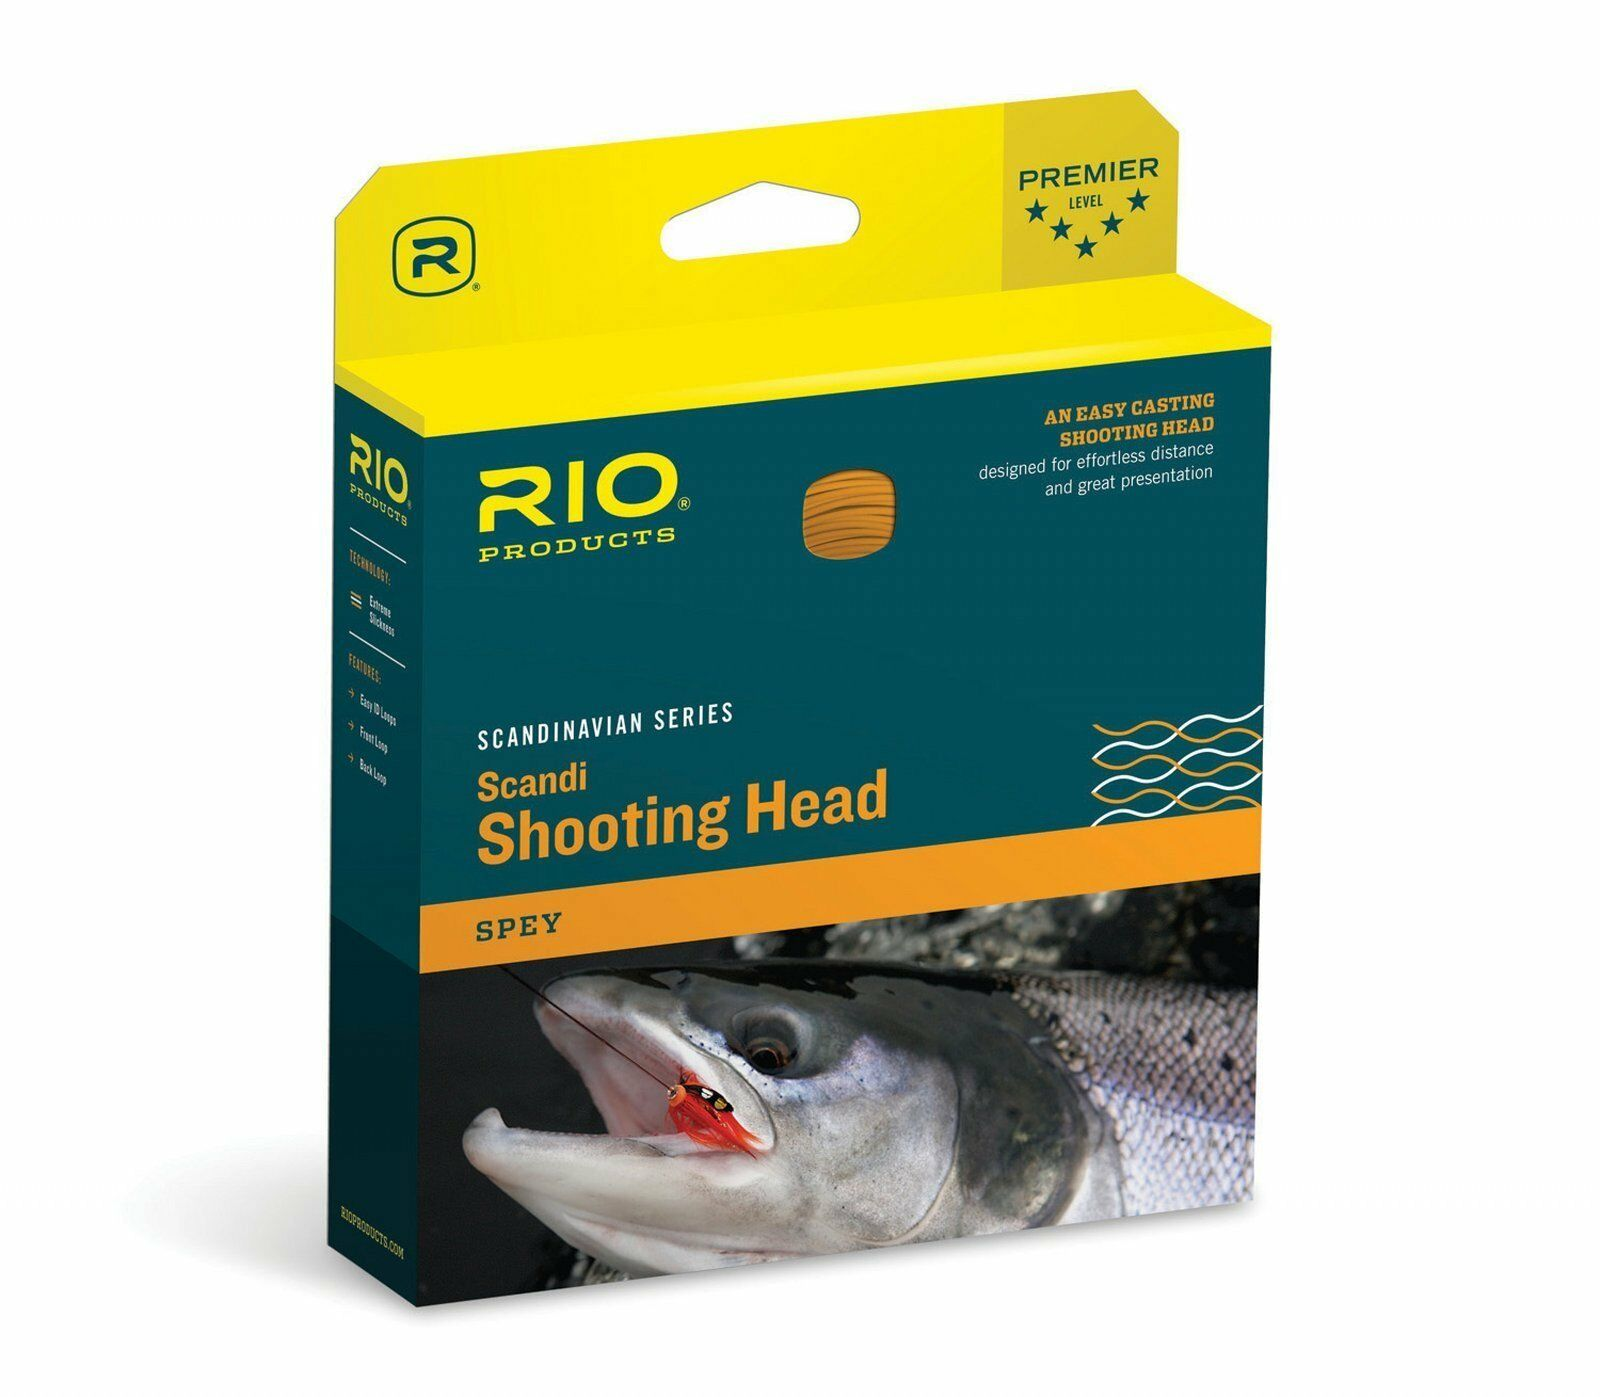 RIO NEW SCANDI SHORT 510-GR 8 WT SPEY ROD CONNECTCORE SHOOTING FLY LINE HEAD